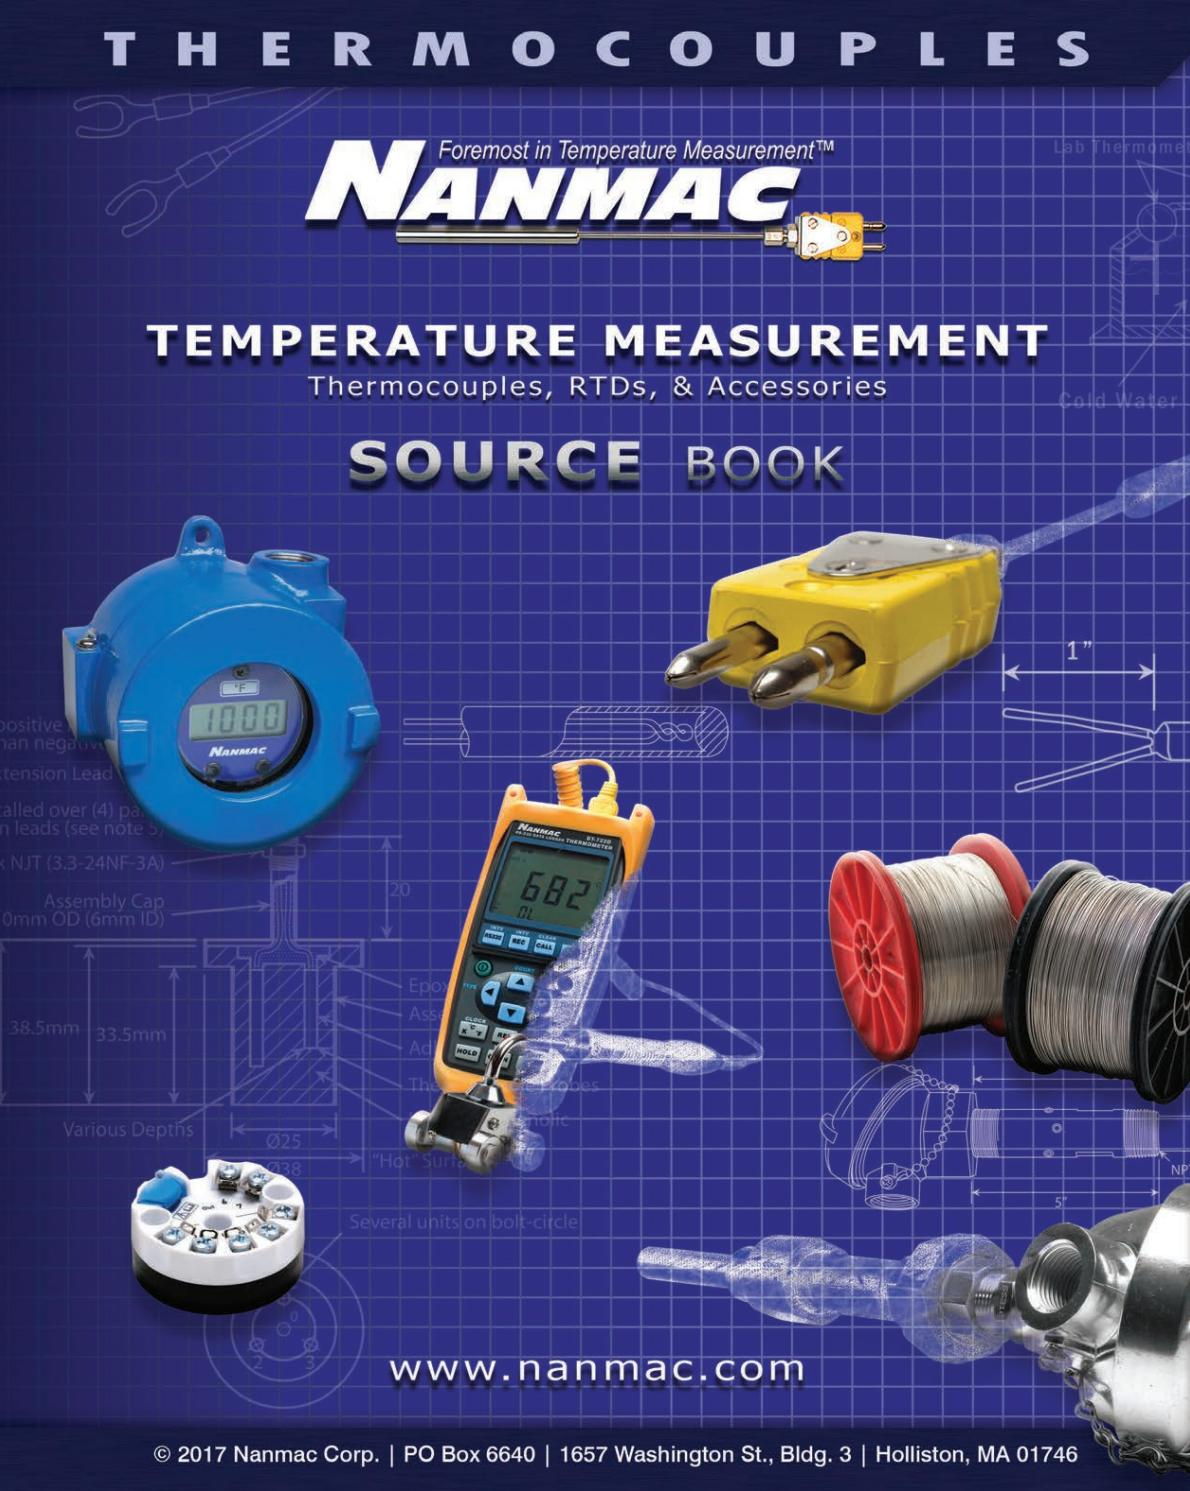 Nanmac Product Catalog 2018 By Rhode Island Small Business Journal Voltage Detector6400v Twopole Testermultifunction Circuit Issuu